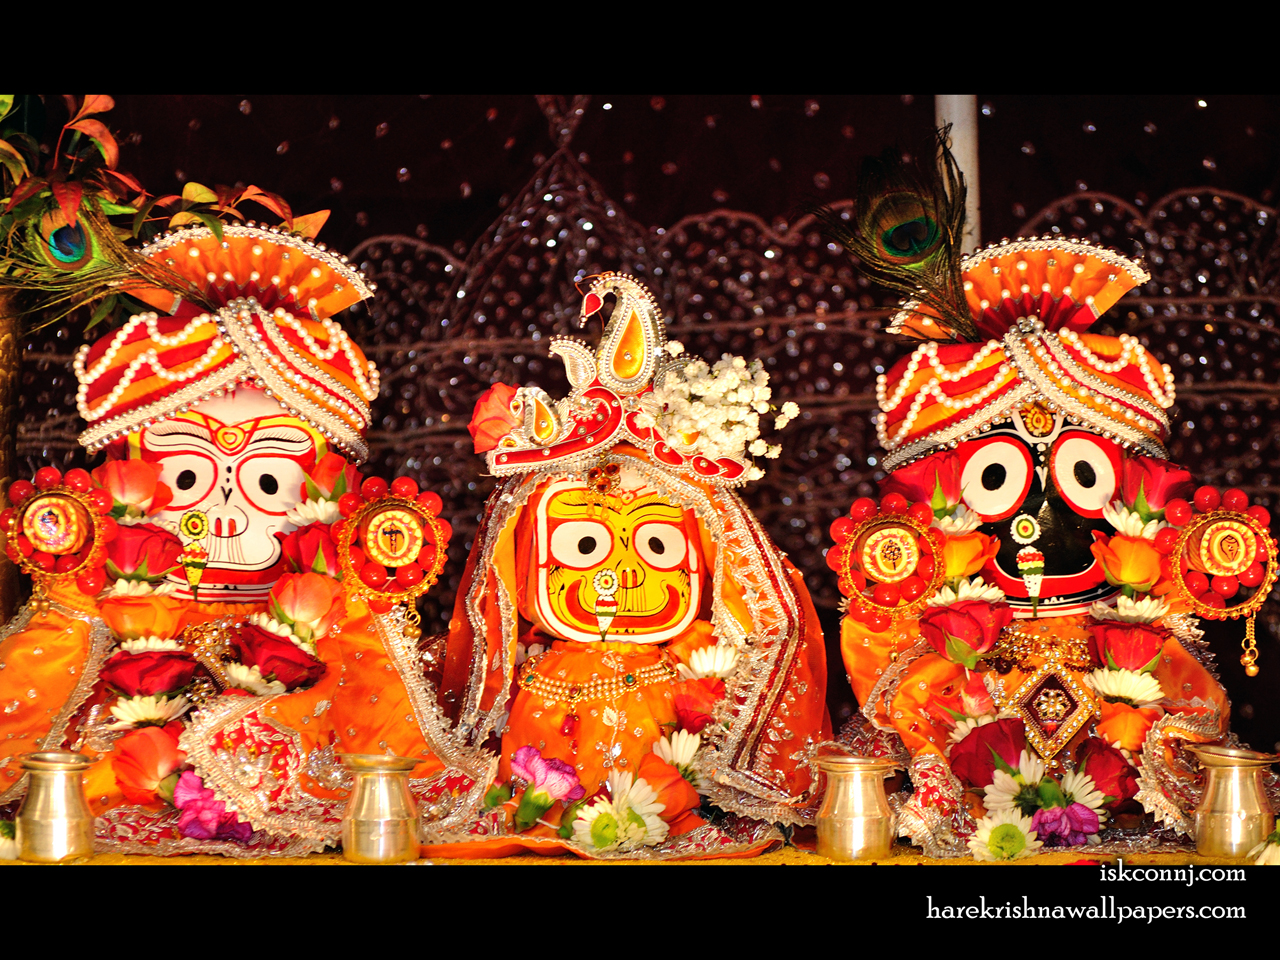 Jagannath Baladeva Subhadra Wallpaper (003) Size 1280x960 Download